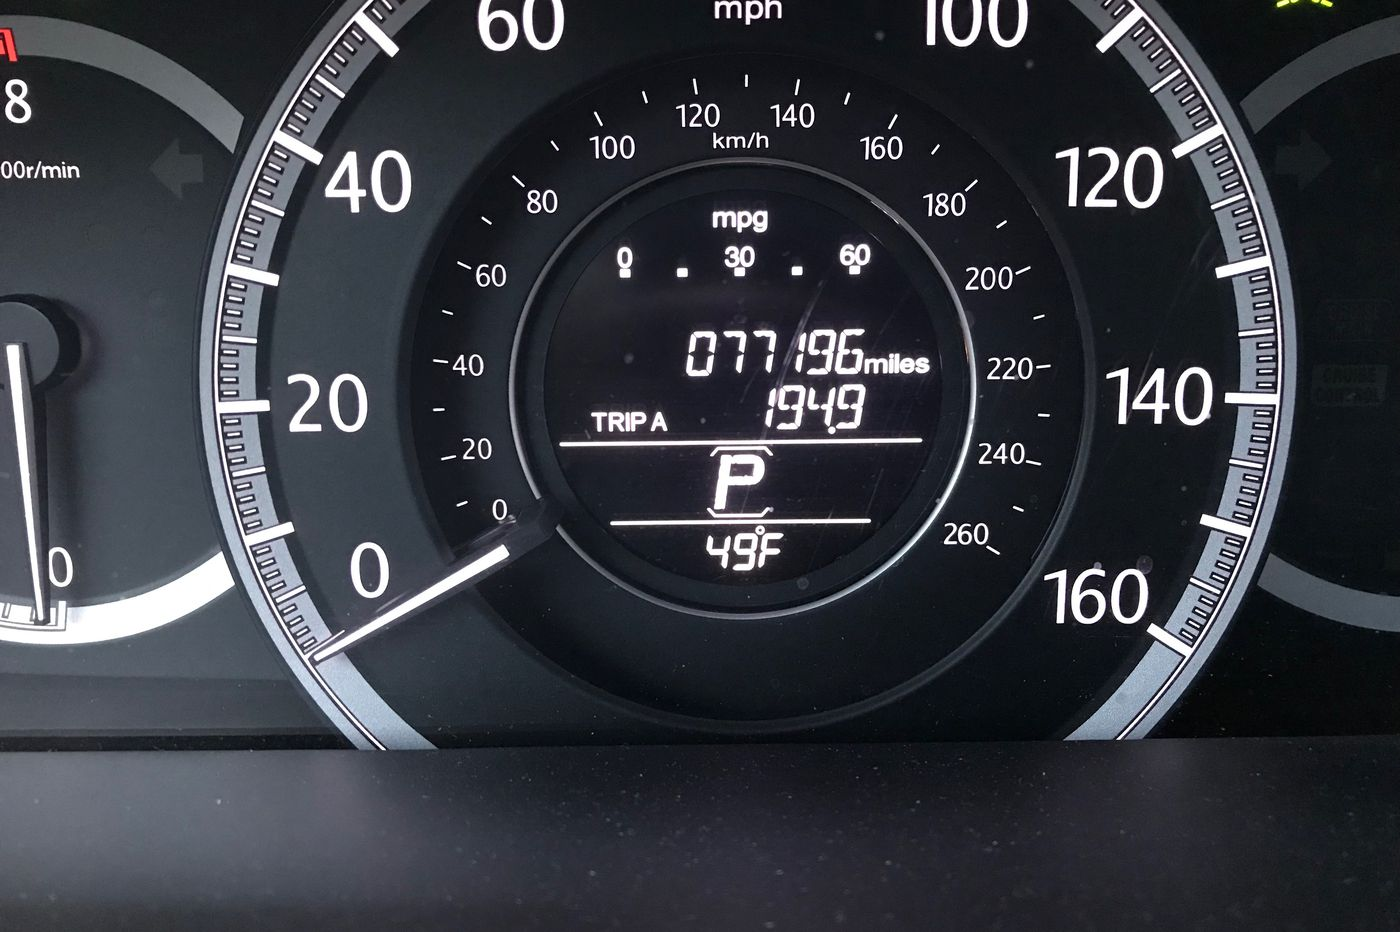 It's freezing, but the car dashboard says it's 50 degrees outside. What's going on?